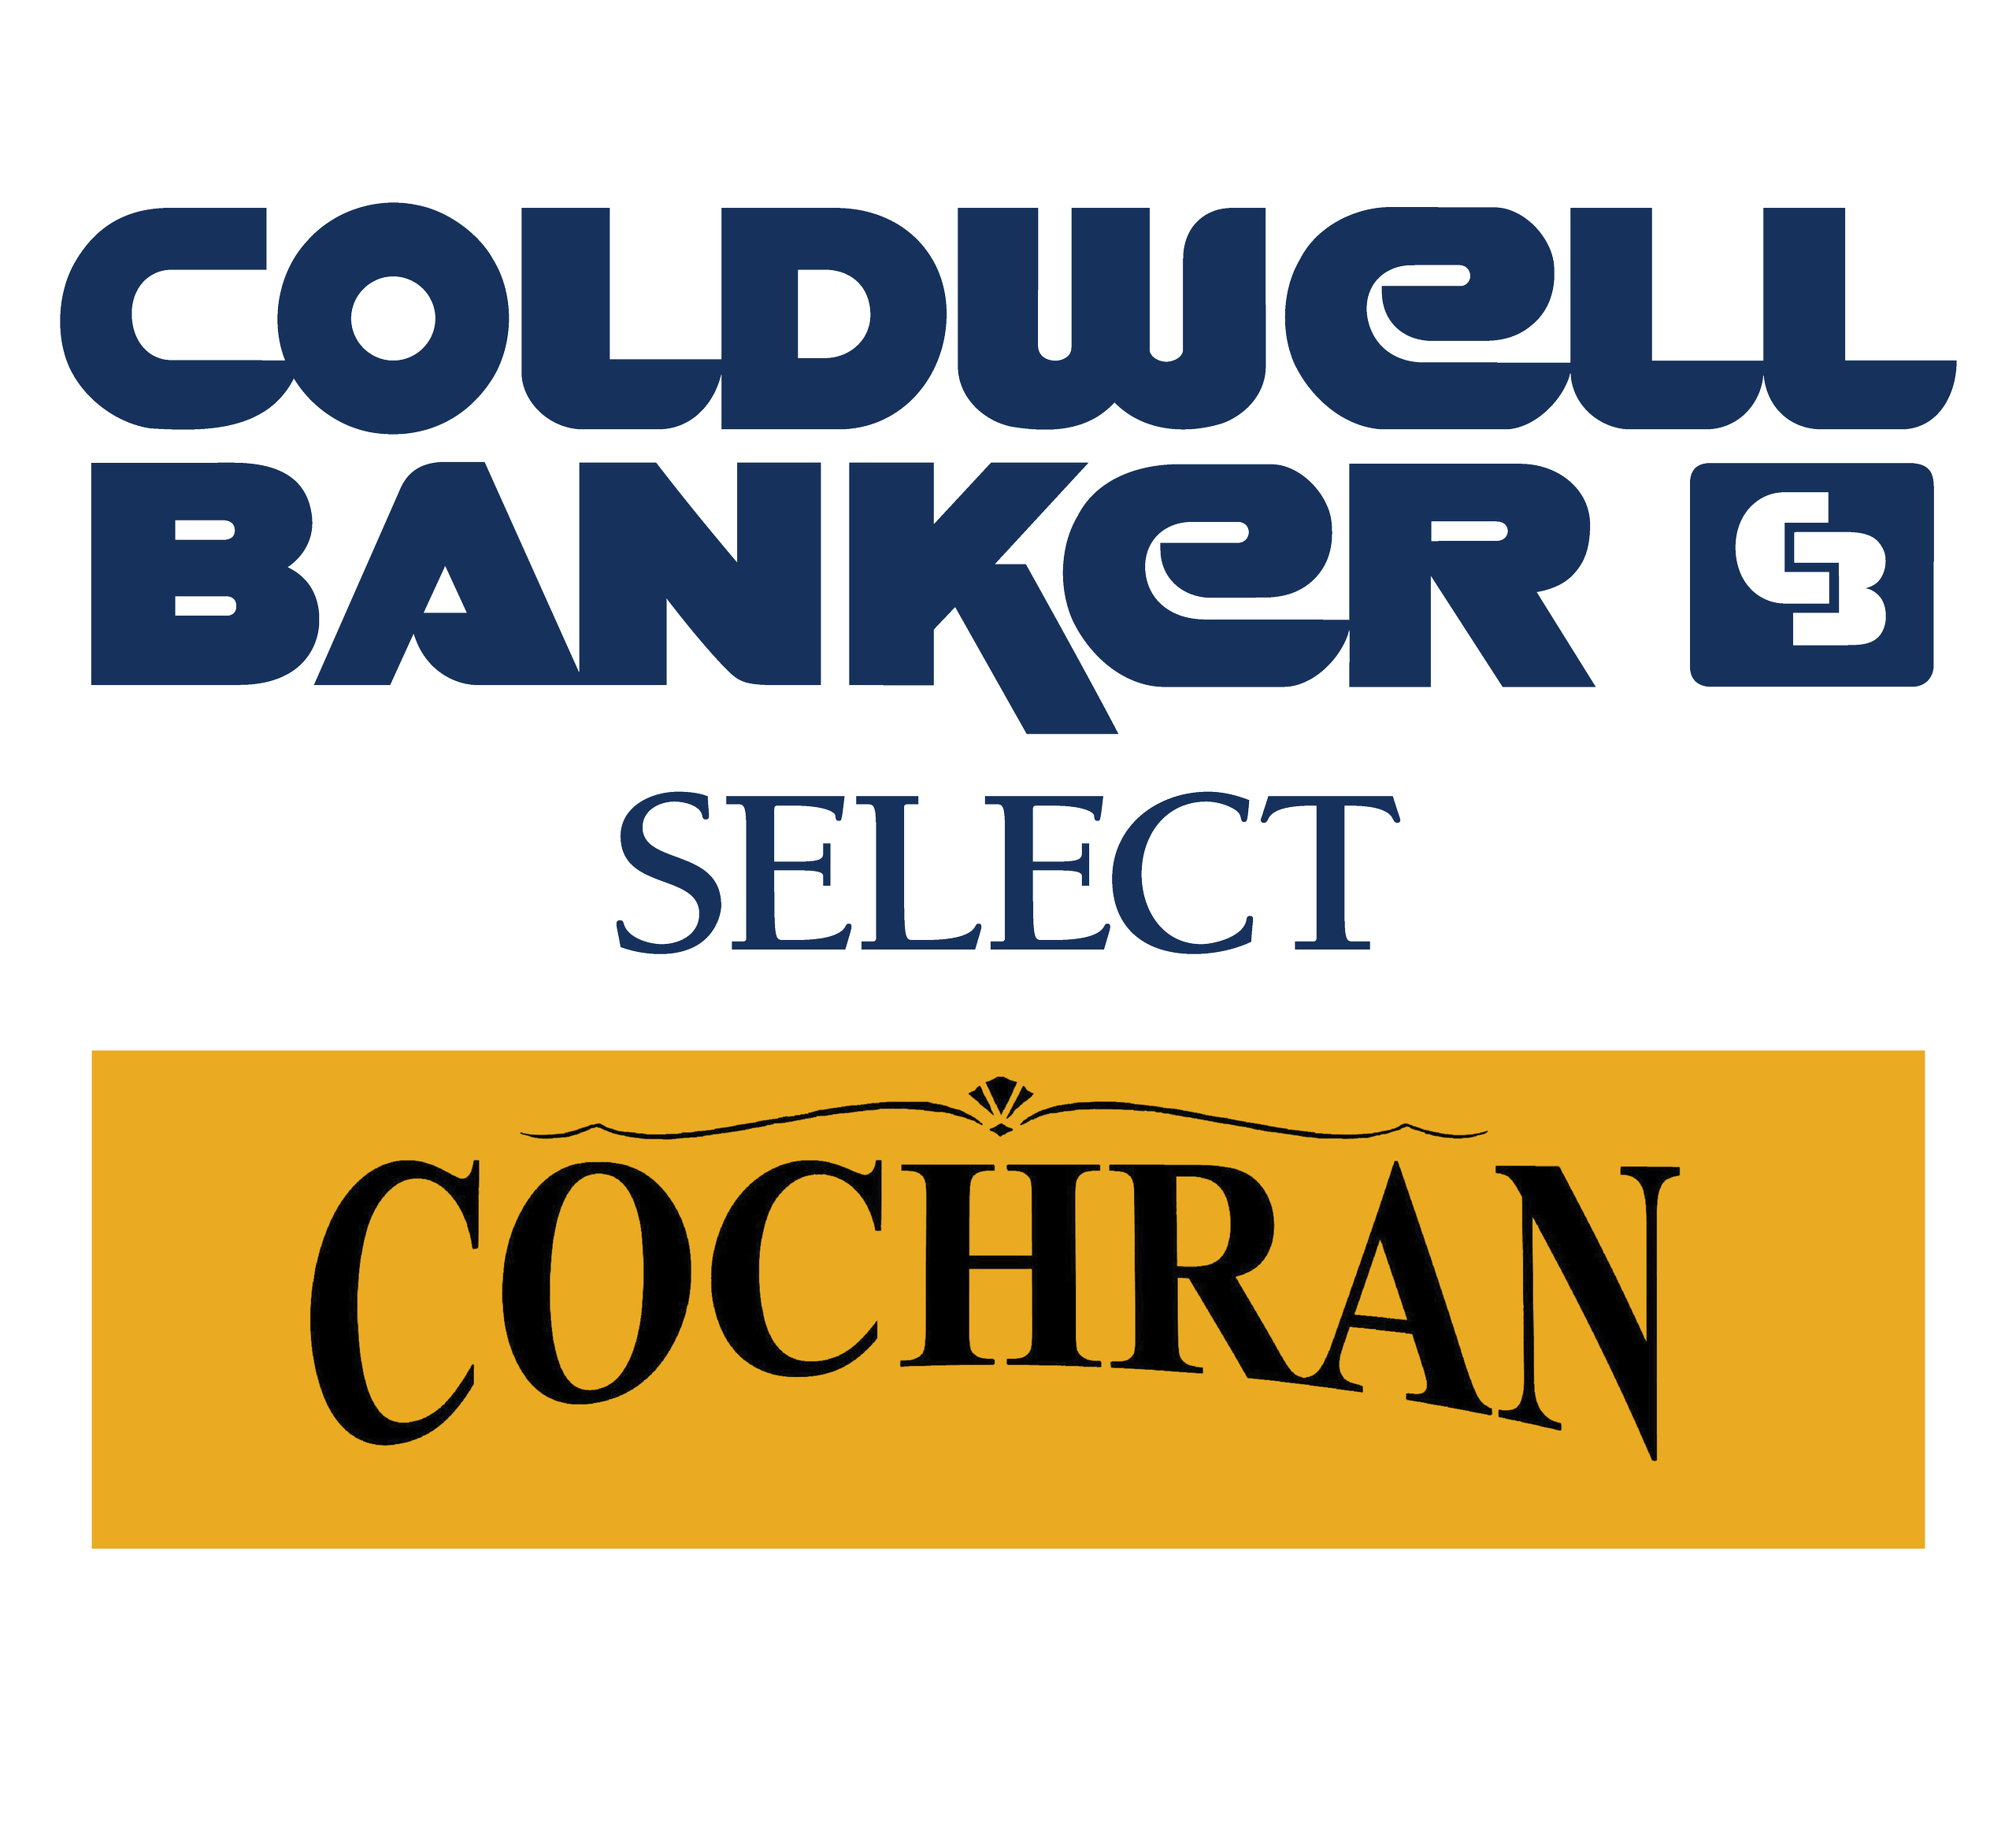 Coldwell Banker Cochran Select